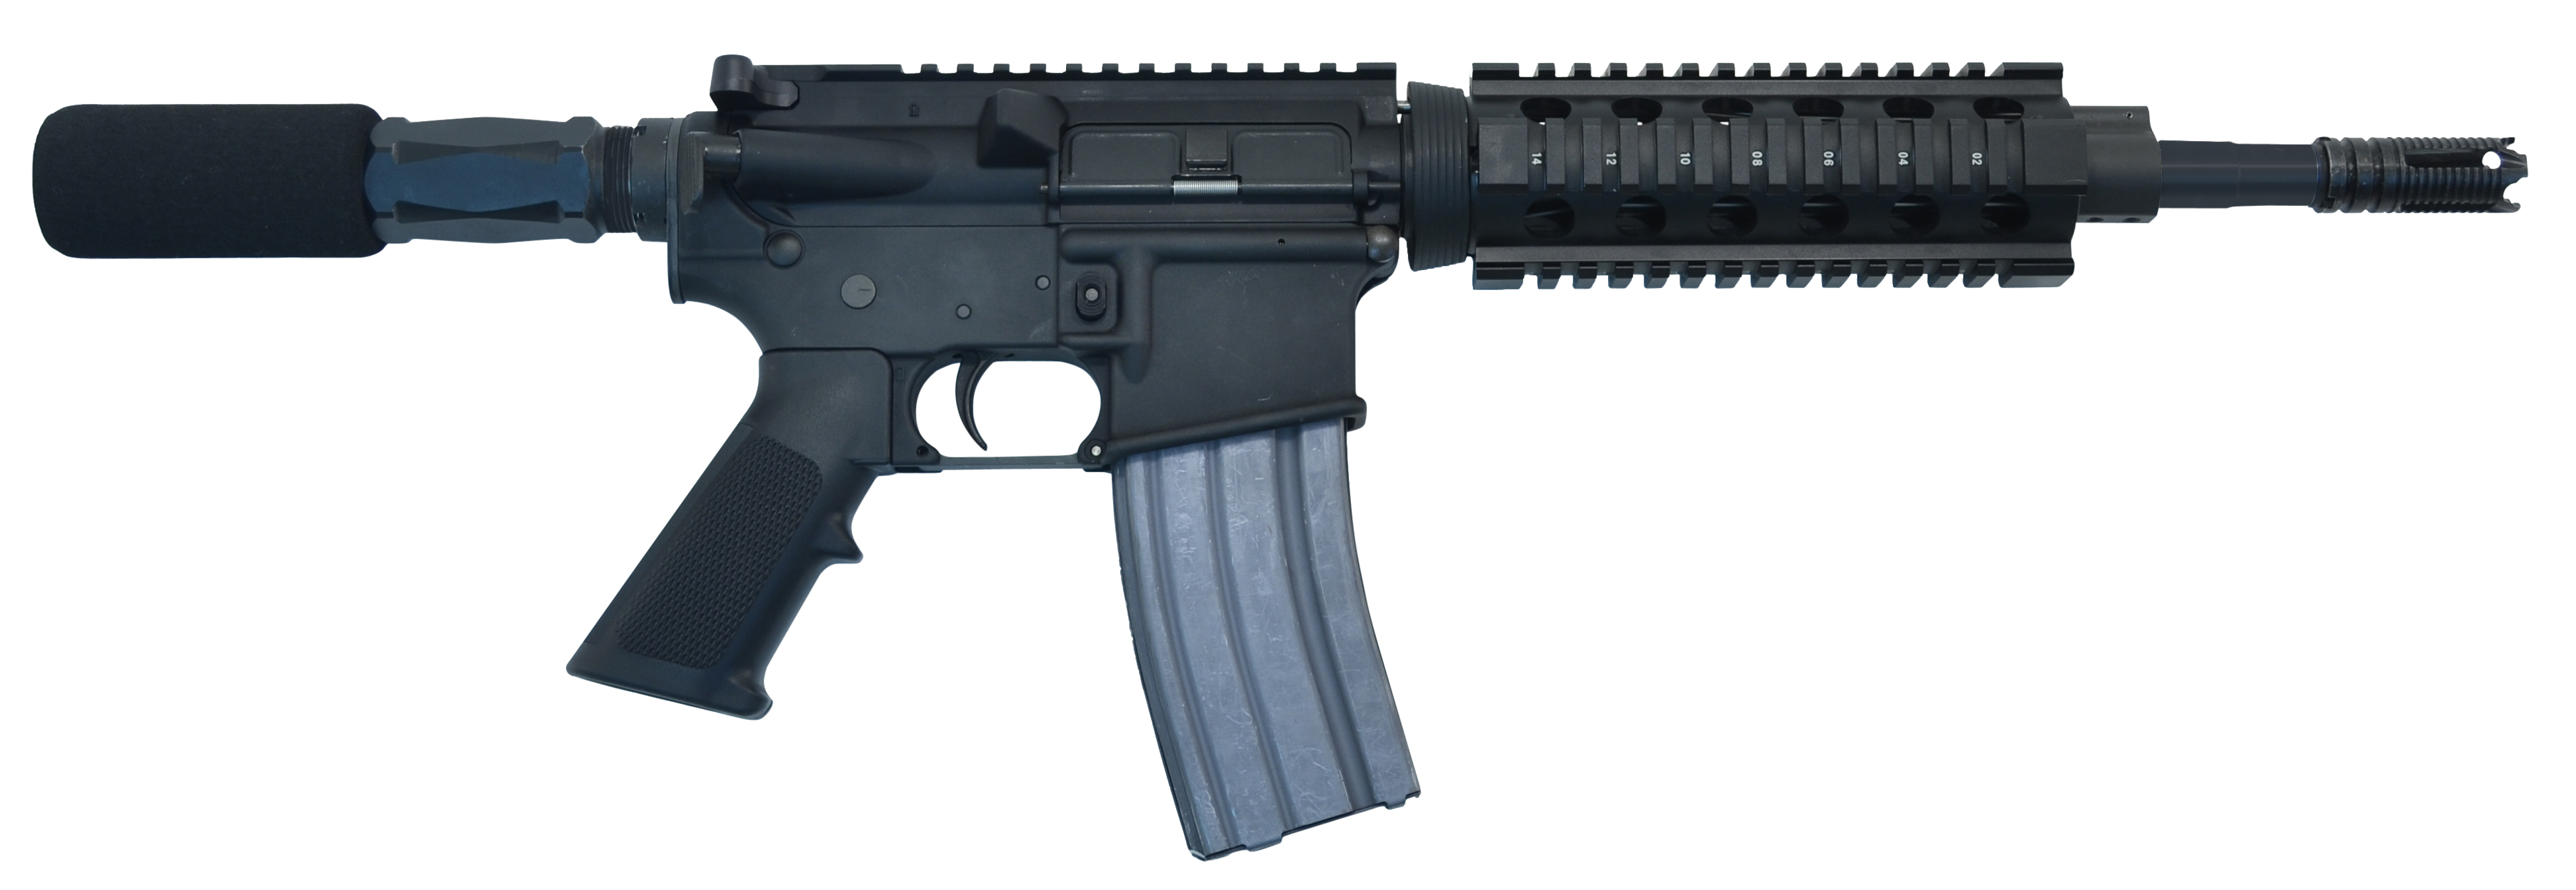 I.O. IODM15P10QR3 M215 Micro QR-10 AR Pistol Semi-Automatic 300 AAC Blackout/Whisper (7.62x35mm) 10